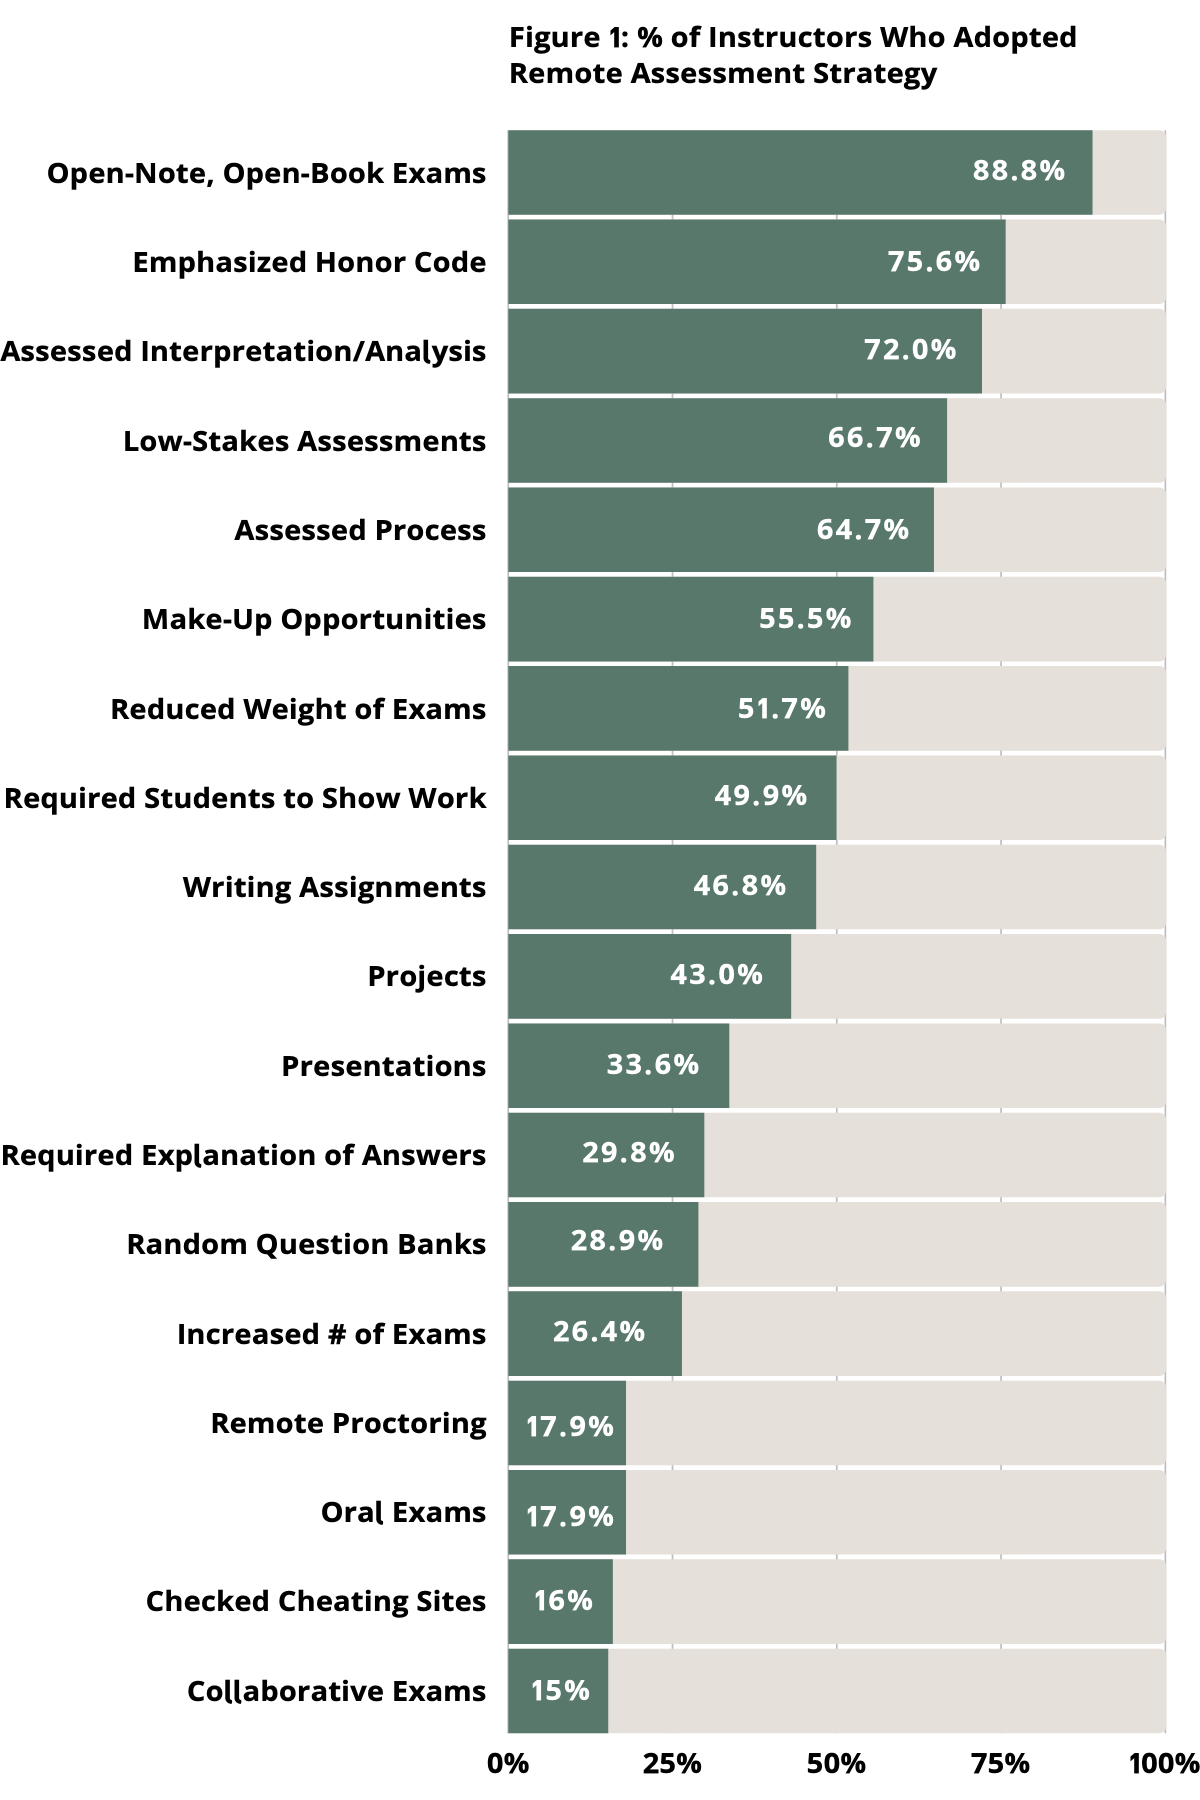 Percent of Instructors Who Adopted Remote Assessment Strategies